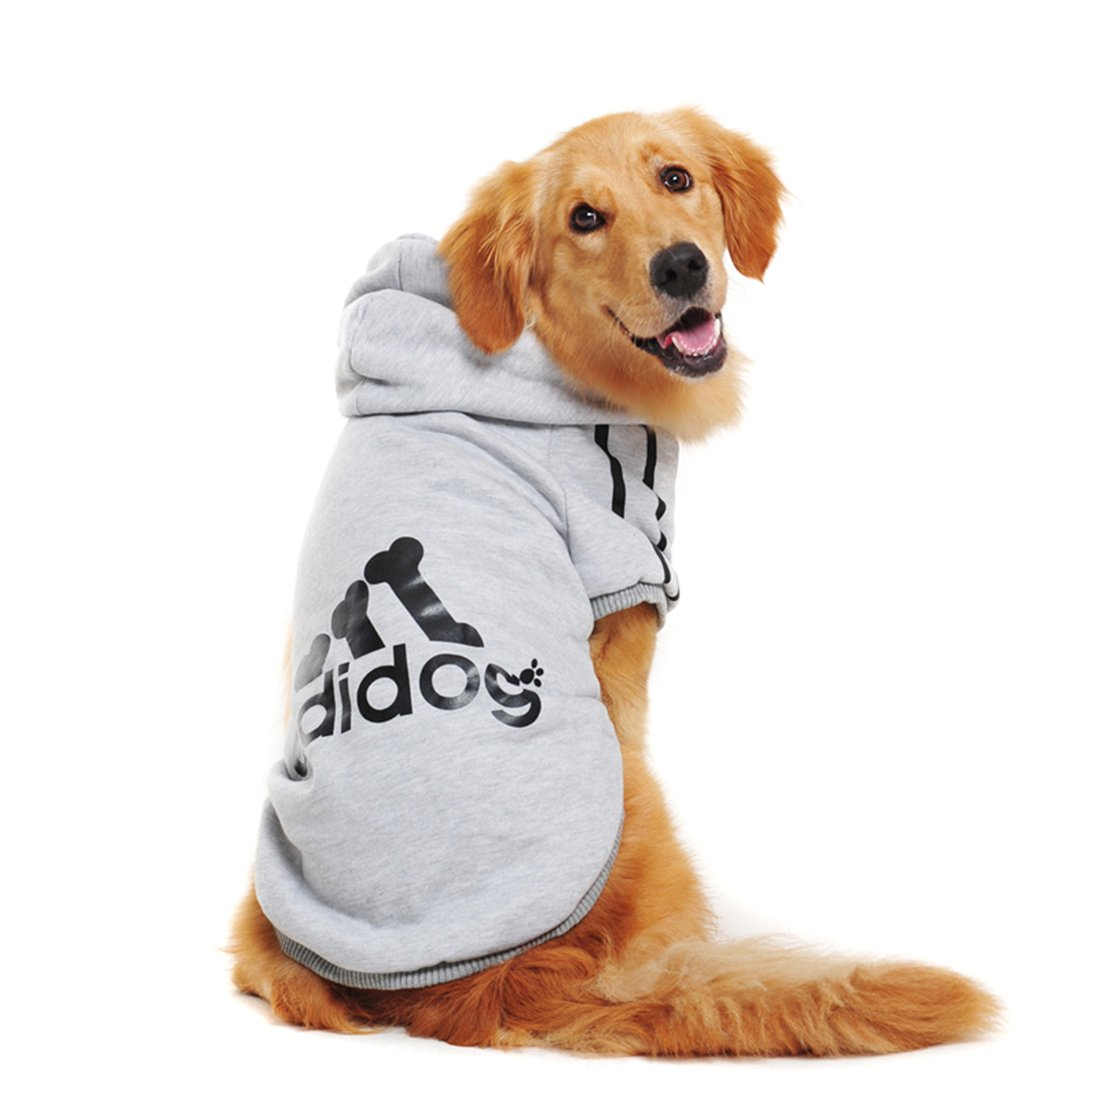 High Quality Spring Autumn Big Dog Clothes Coat Jacket Clothing for Dogs Large Size Golden Retriever Labrador 3XL-9XL Adidog Hoodie (Gray, 6XL)